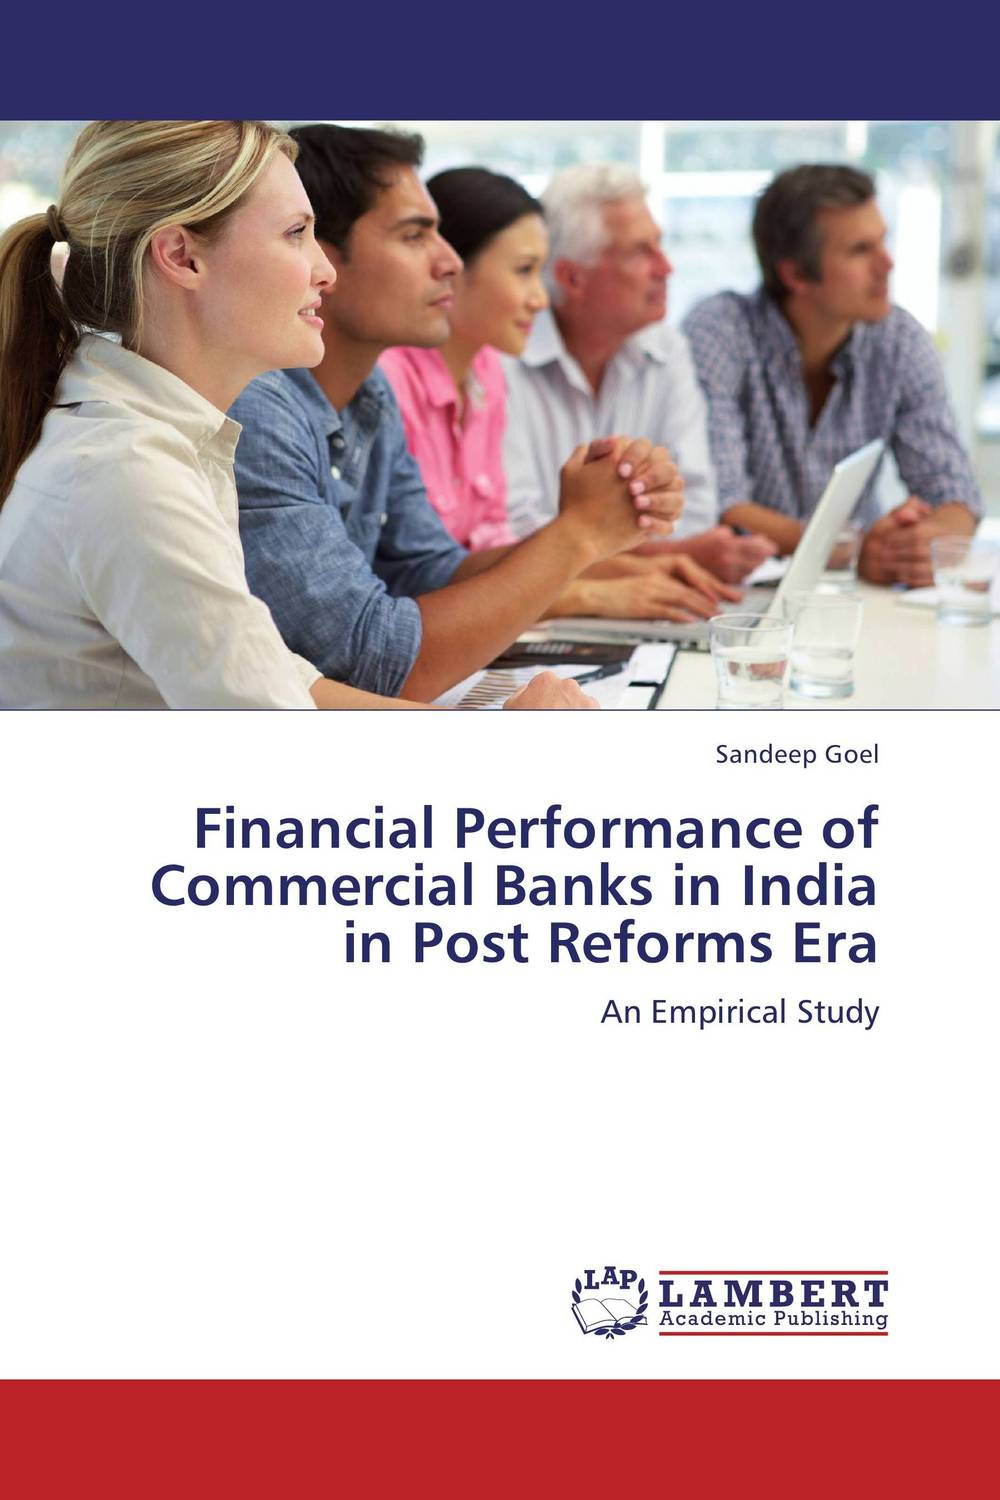 Financial Performance of Commercial Banks in India in Post Reforms Era